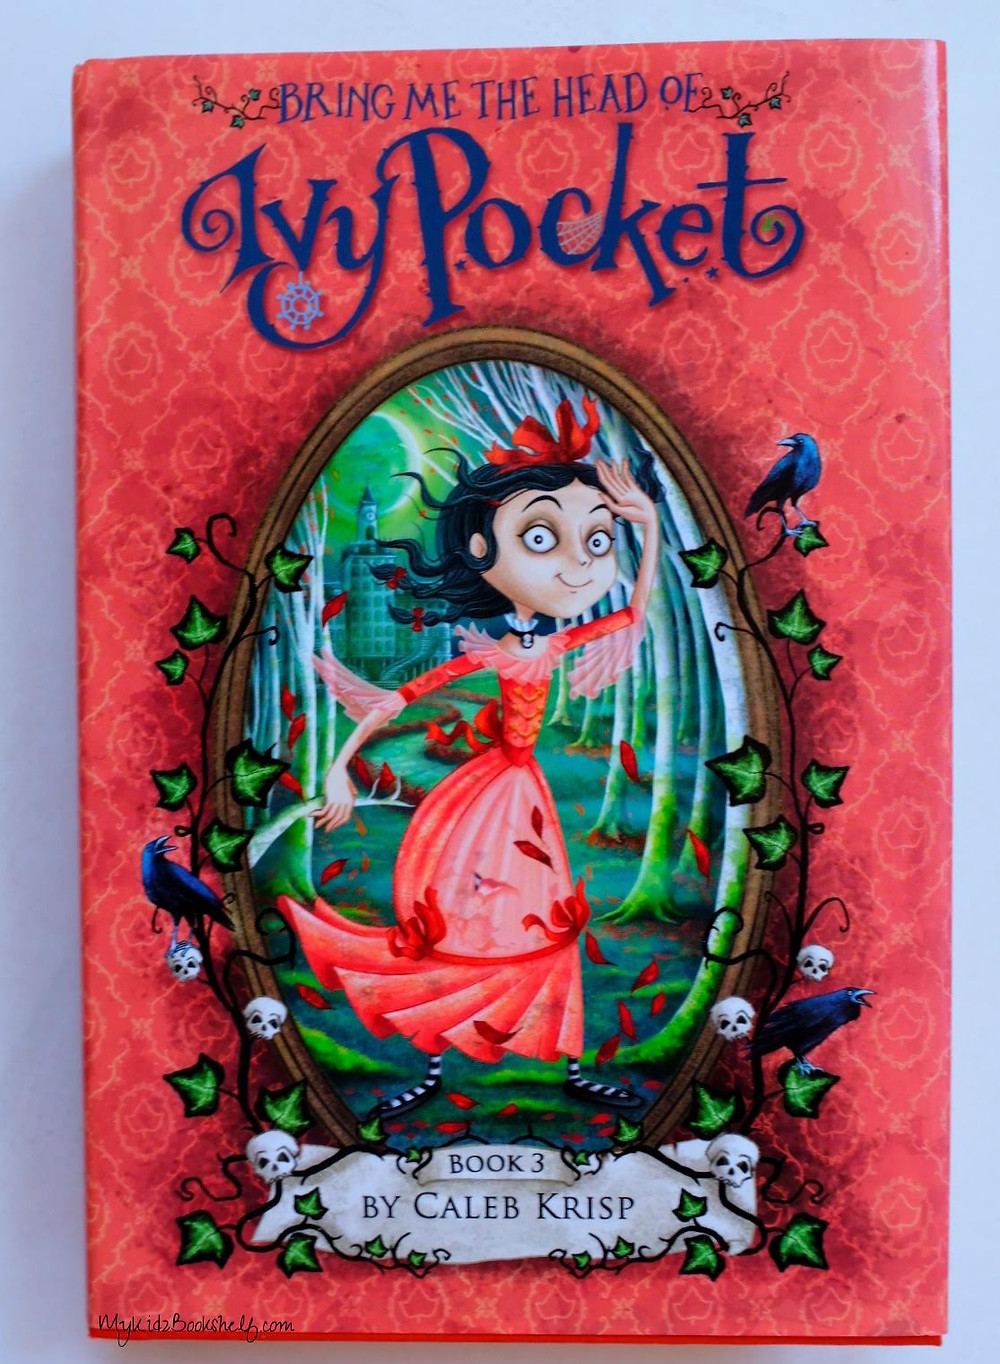 Illustration from book cover Bring Me The Head of Ivy Pocket by Caleb Krisp has girl on cover running through wooded area with big building in background with clocktower